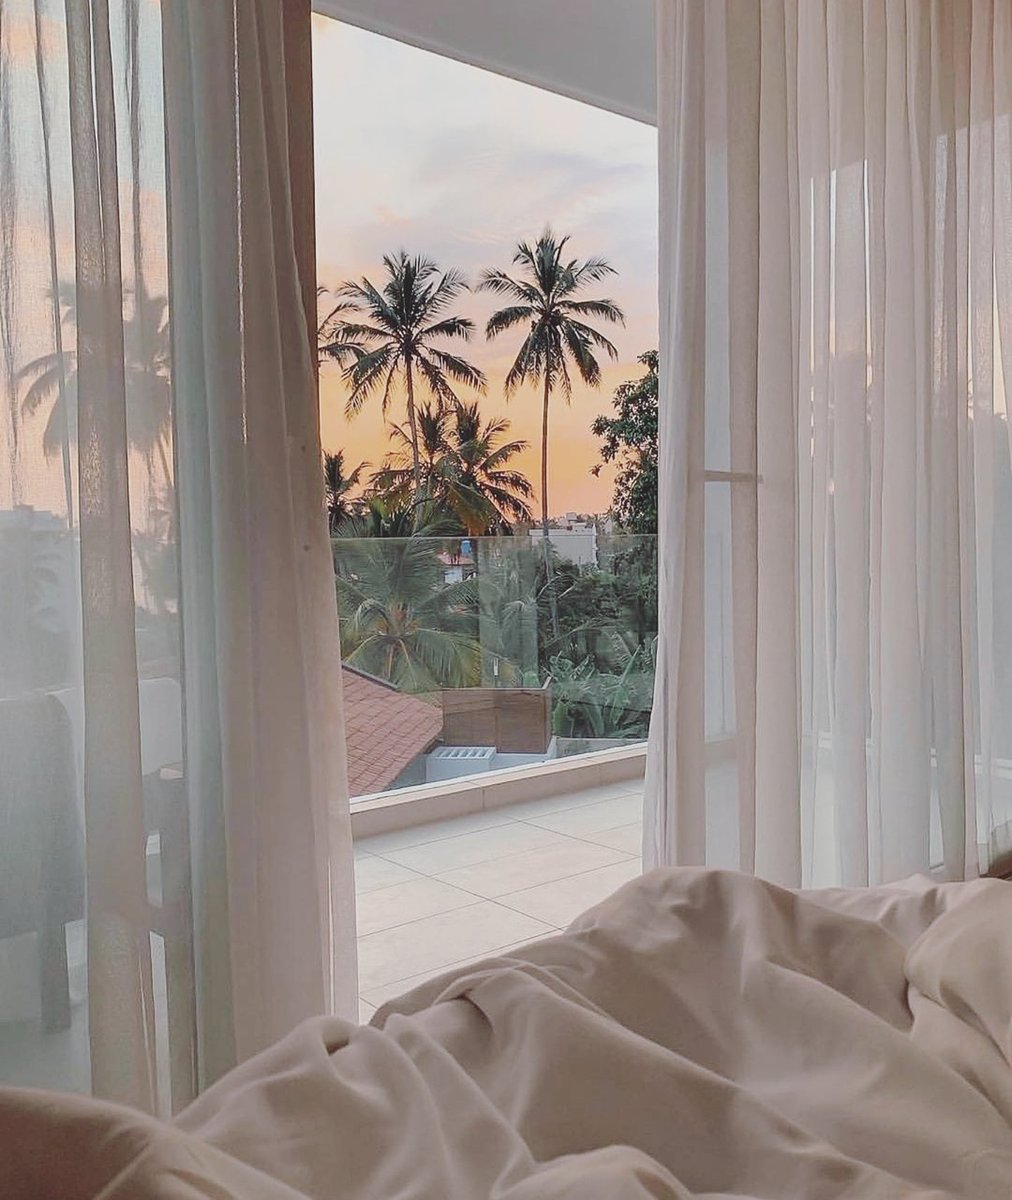 Image for The cosiest set up & prettiest view 😍   #inspo https://t.co/ipBOGVfFkD